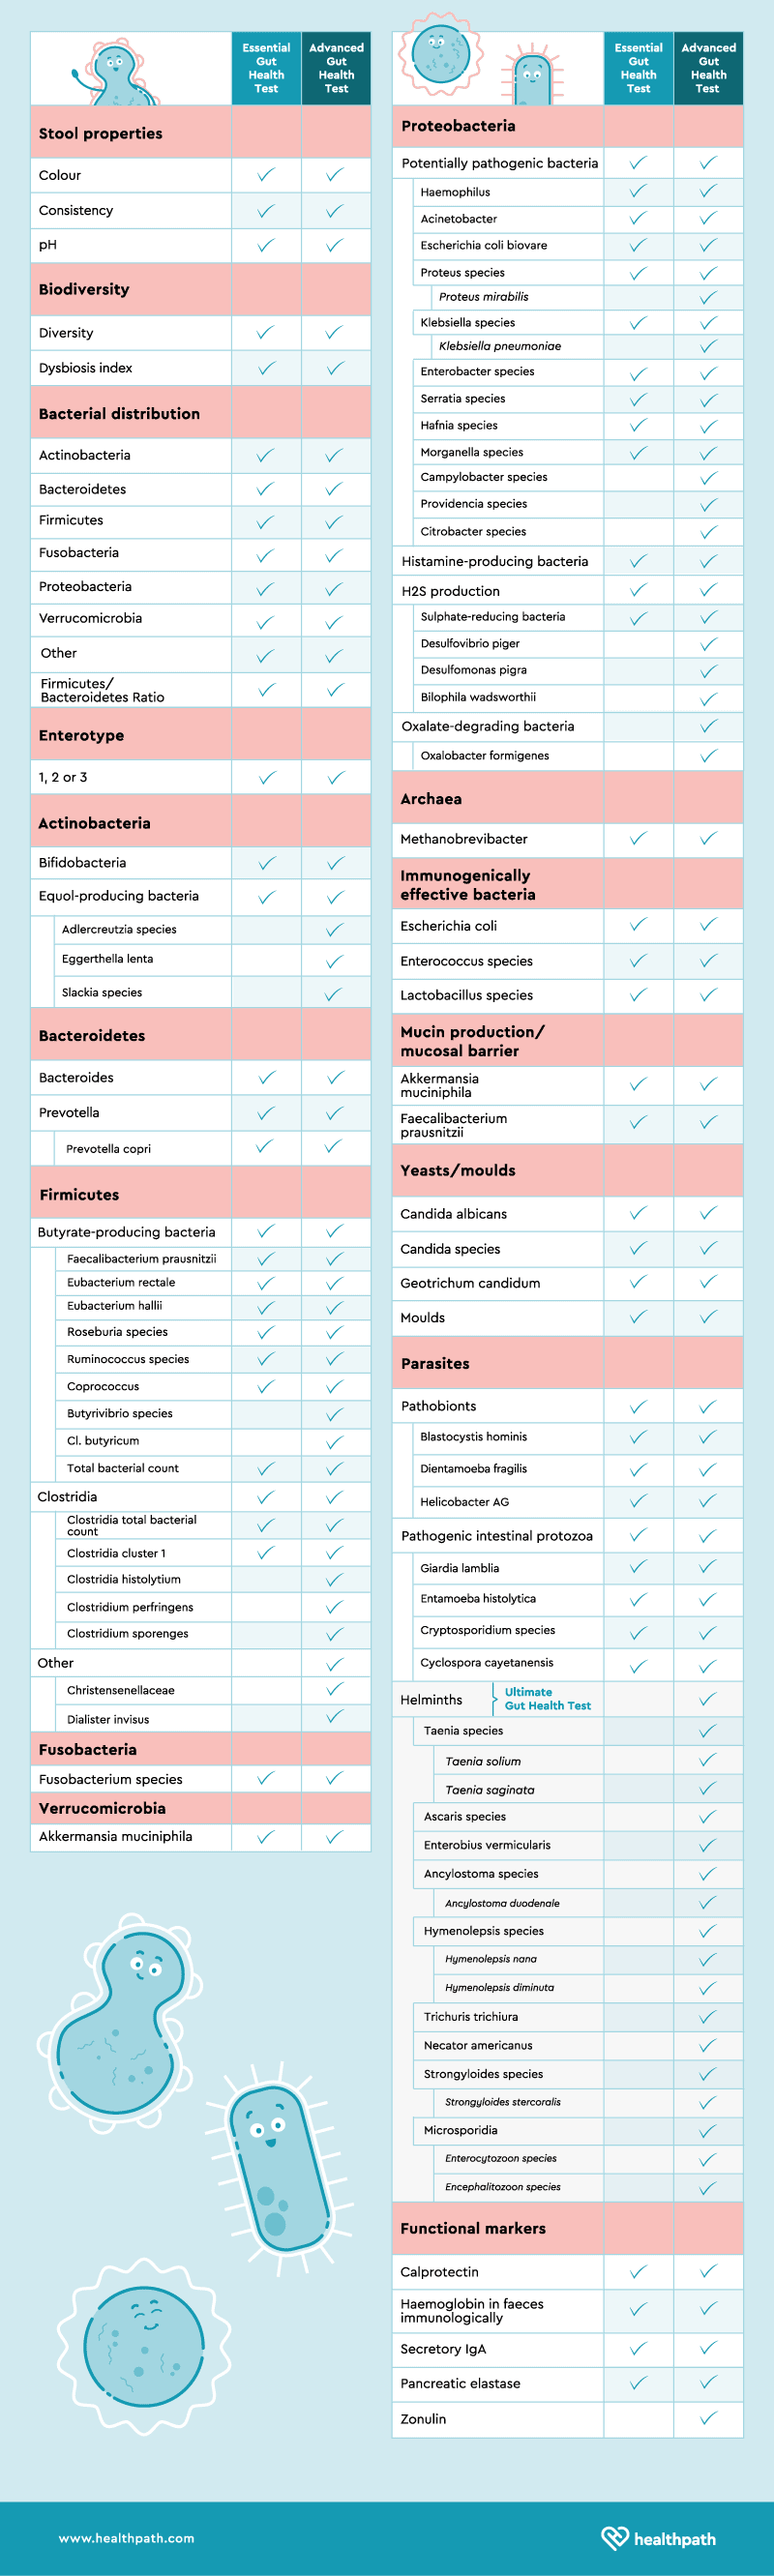 Healthpath biomarkers comparison table